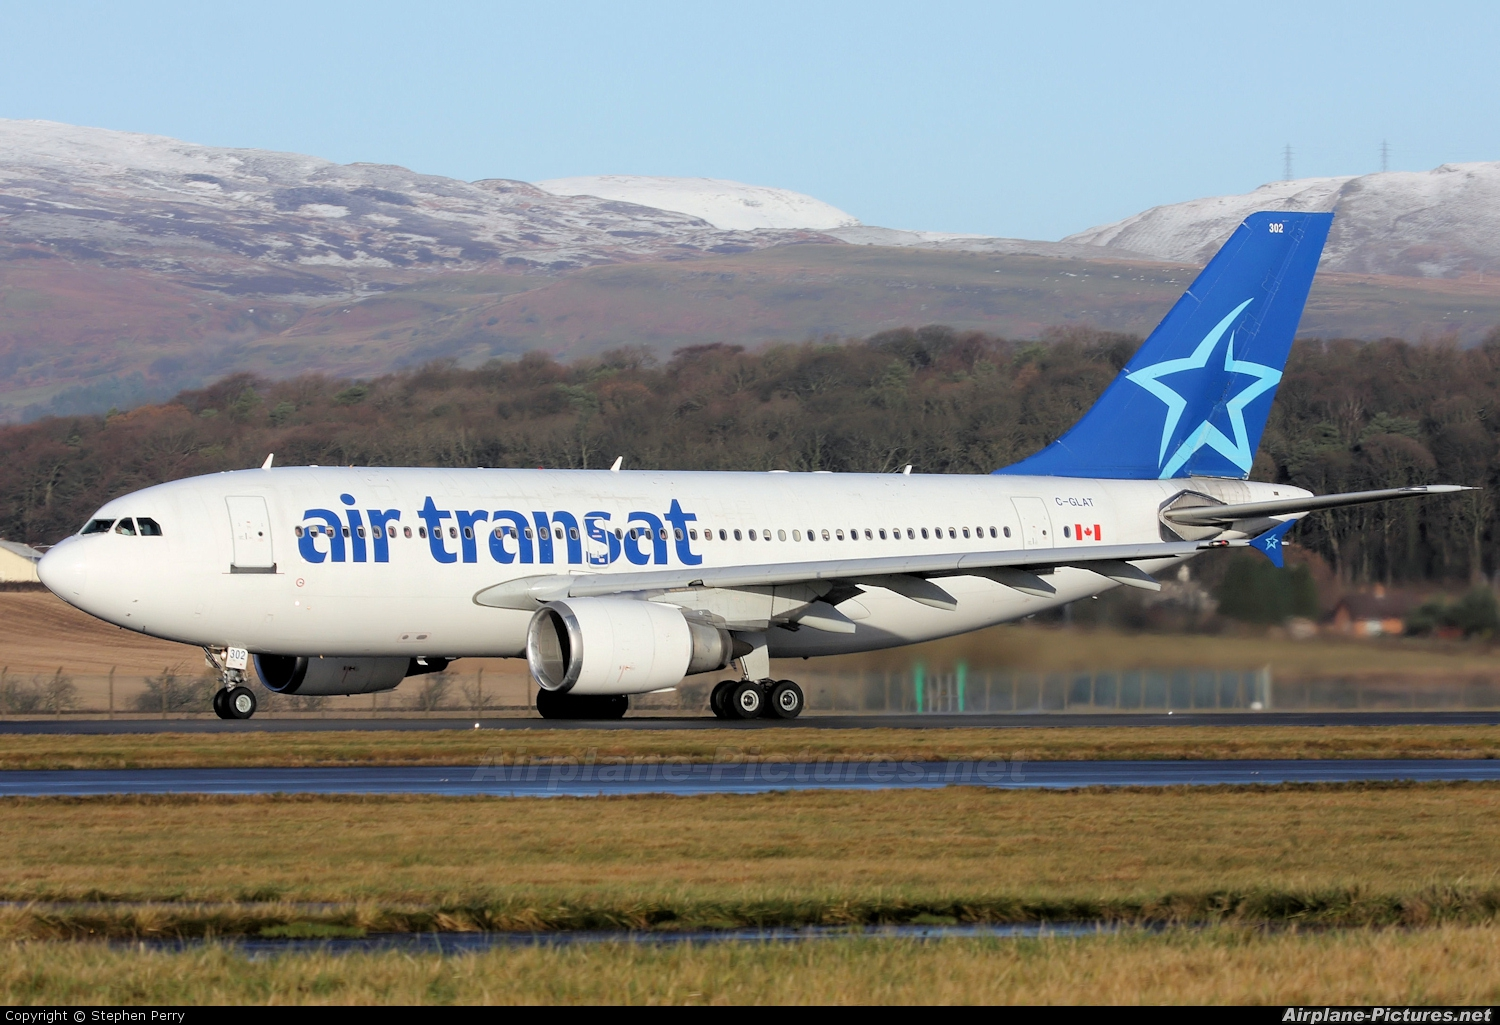 c glat air transat airbus a310 at glasgow photo id 116148 airplane pictures net